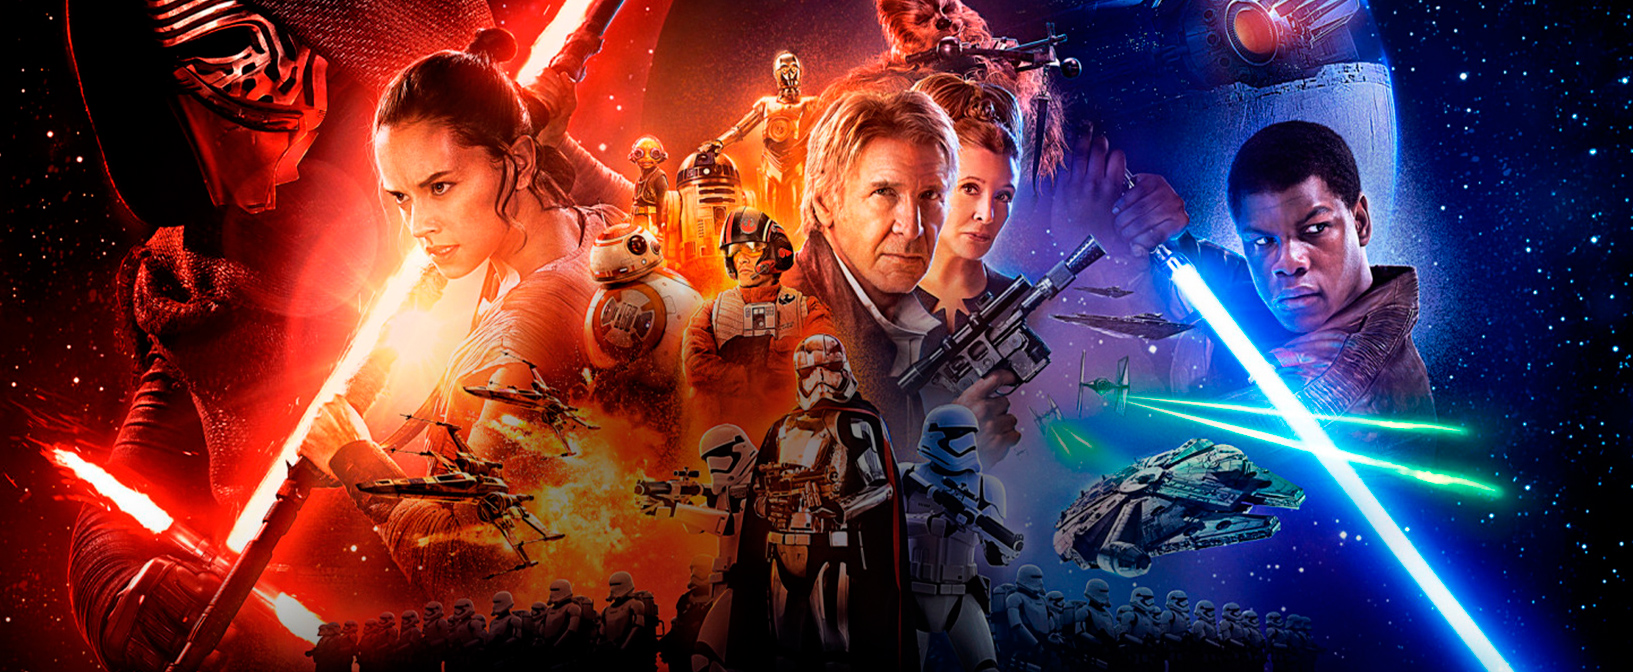 banner_site_arabella_star_wars1